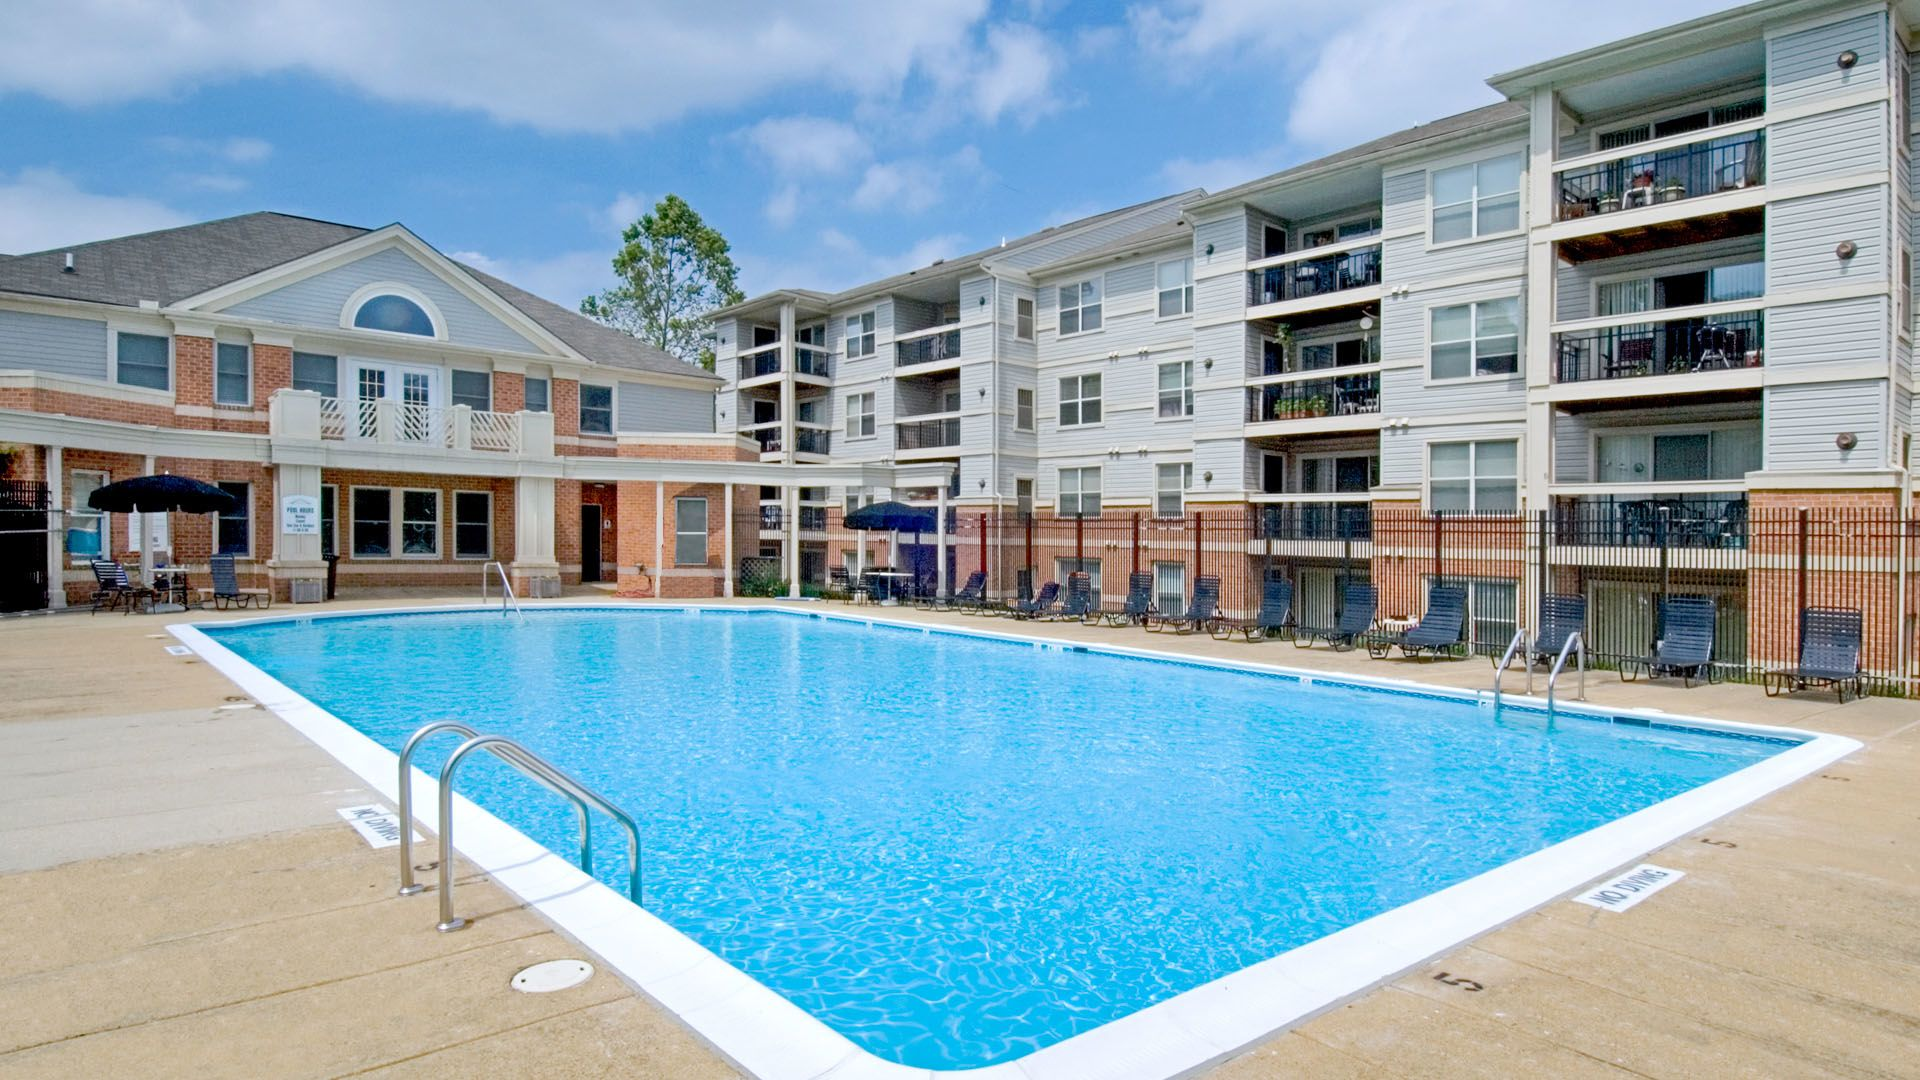 Best Luxury Apartment By Adams Crossing Apartments: Dazzling New Apartments In Waldorf Md | Stylish Adams Crossing Apartments